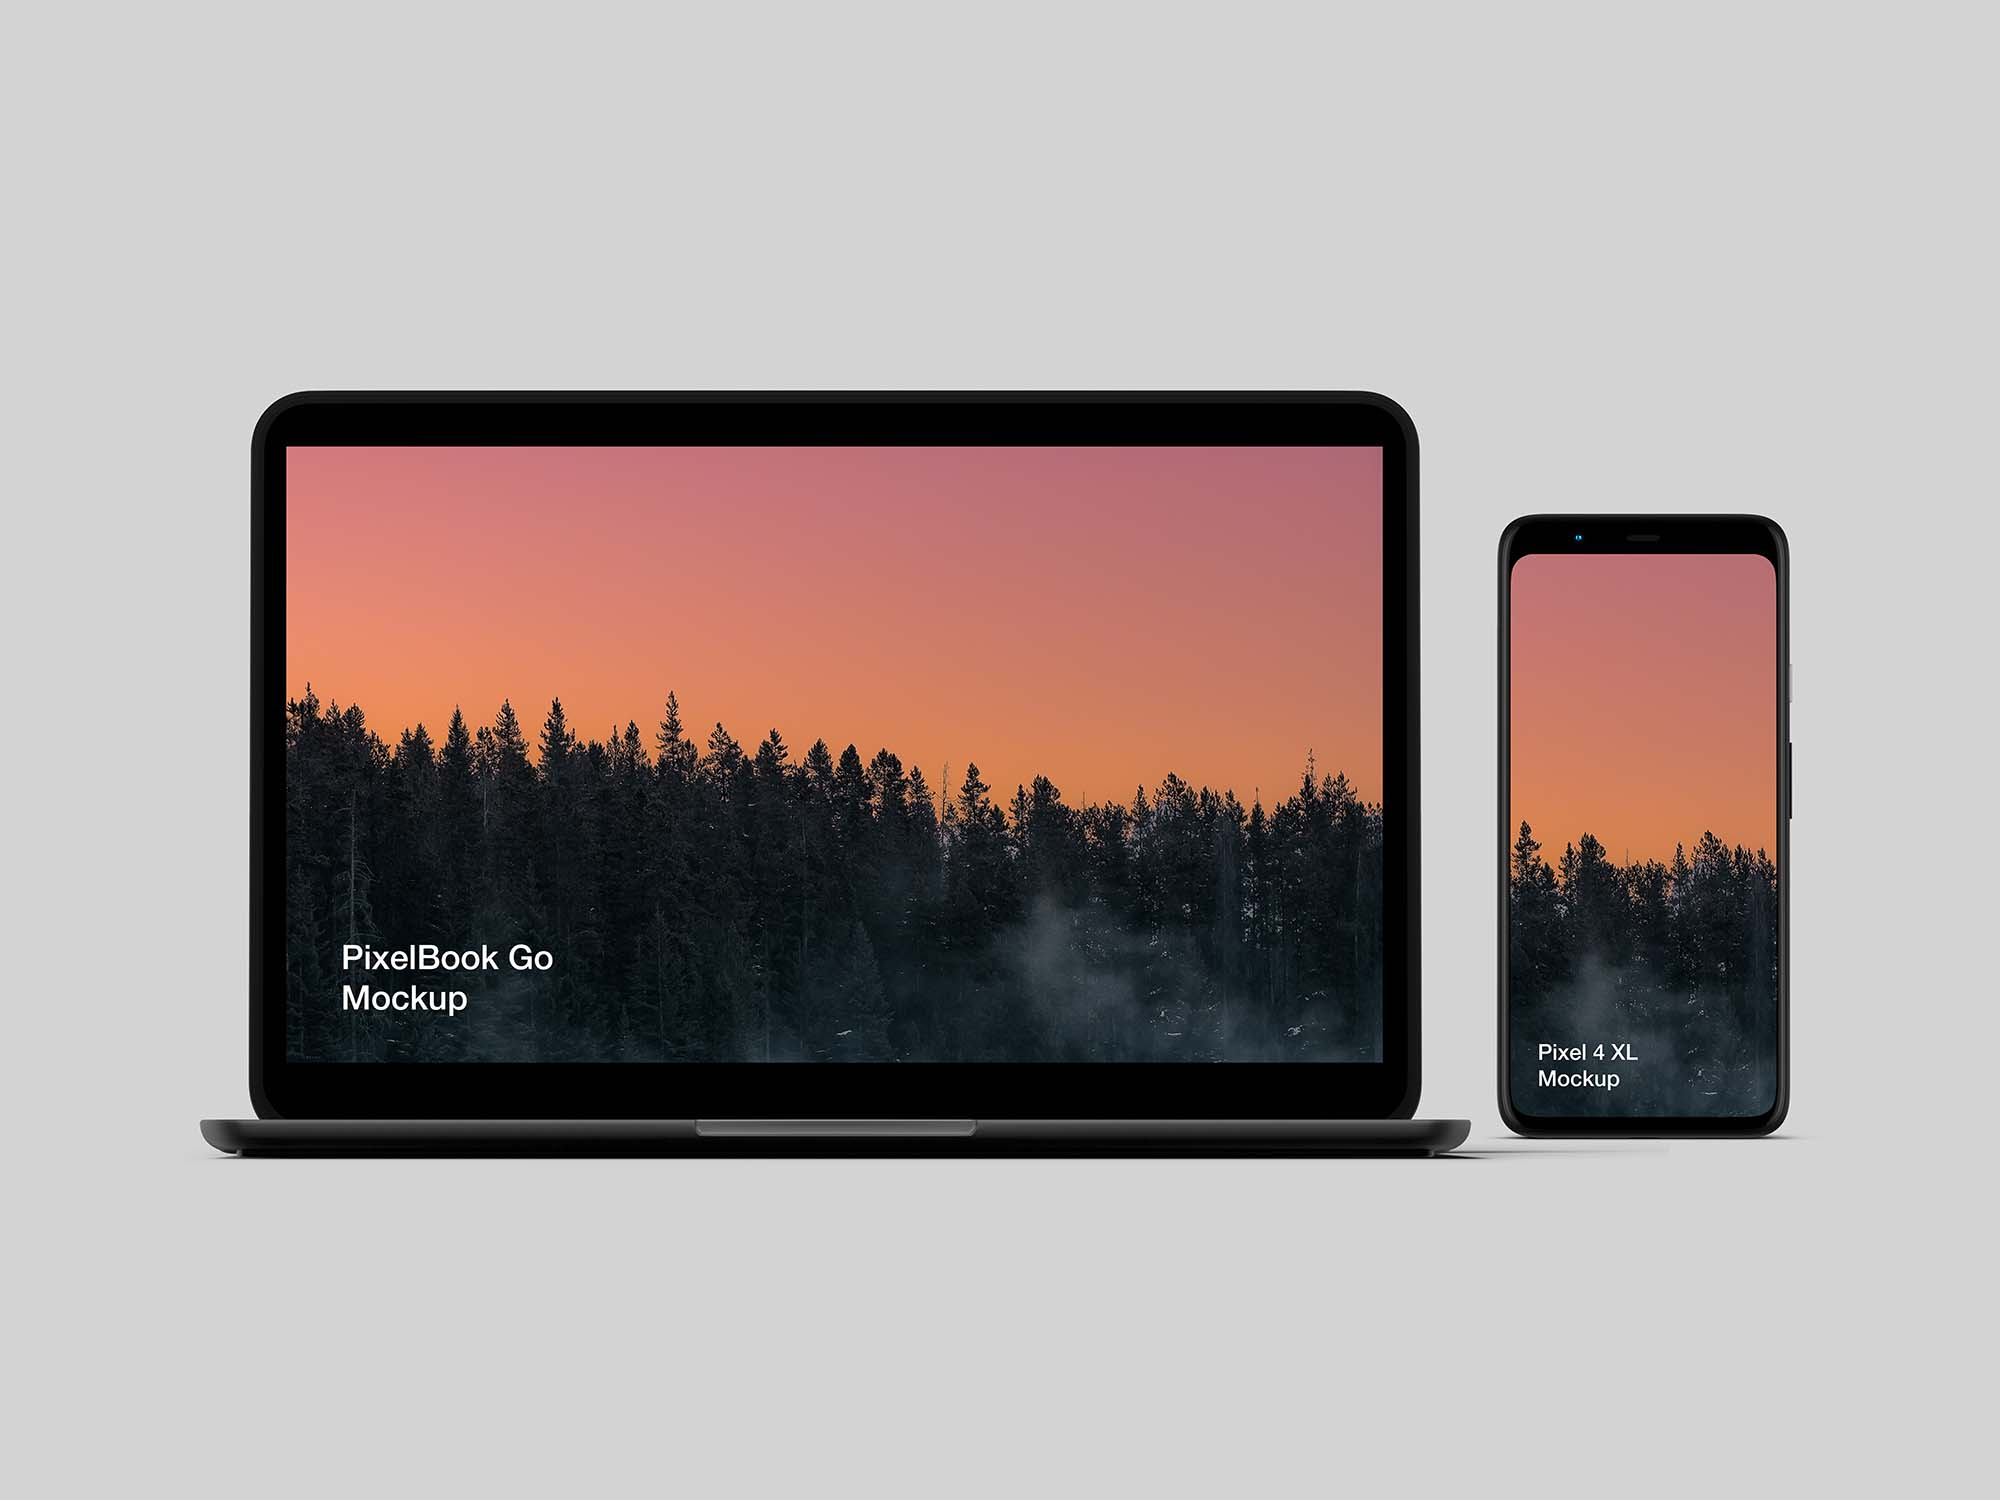 Pixel 4 and PixelBook Go Mockup